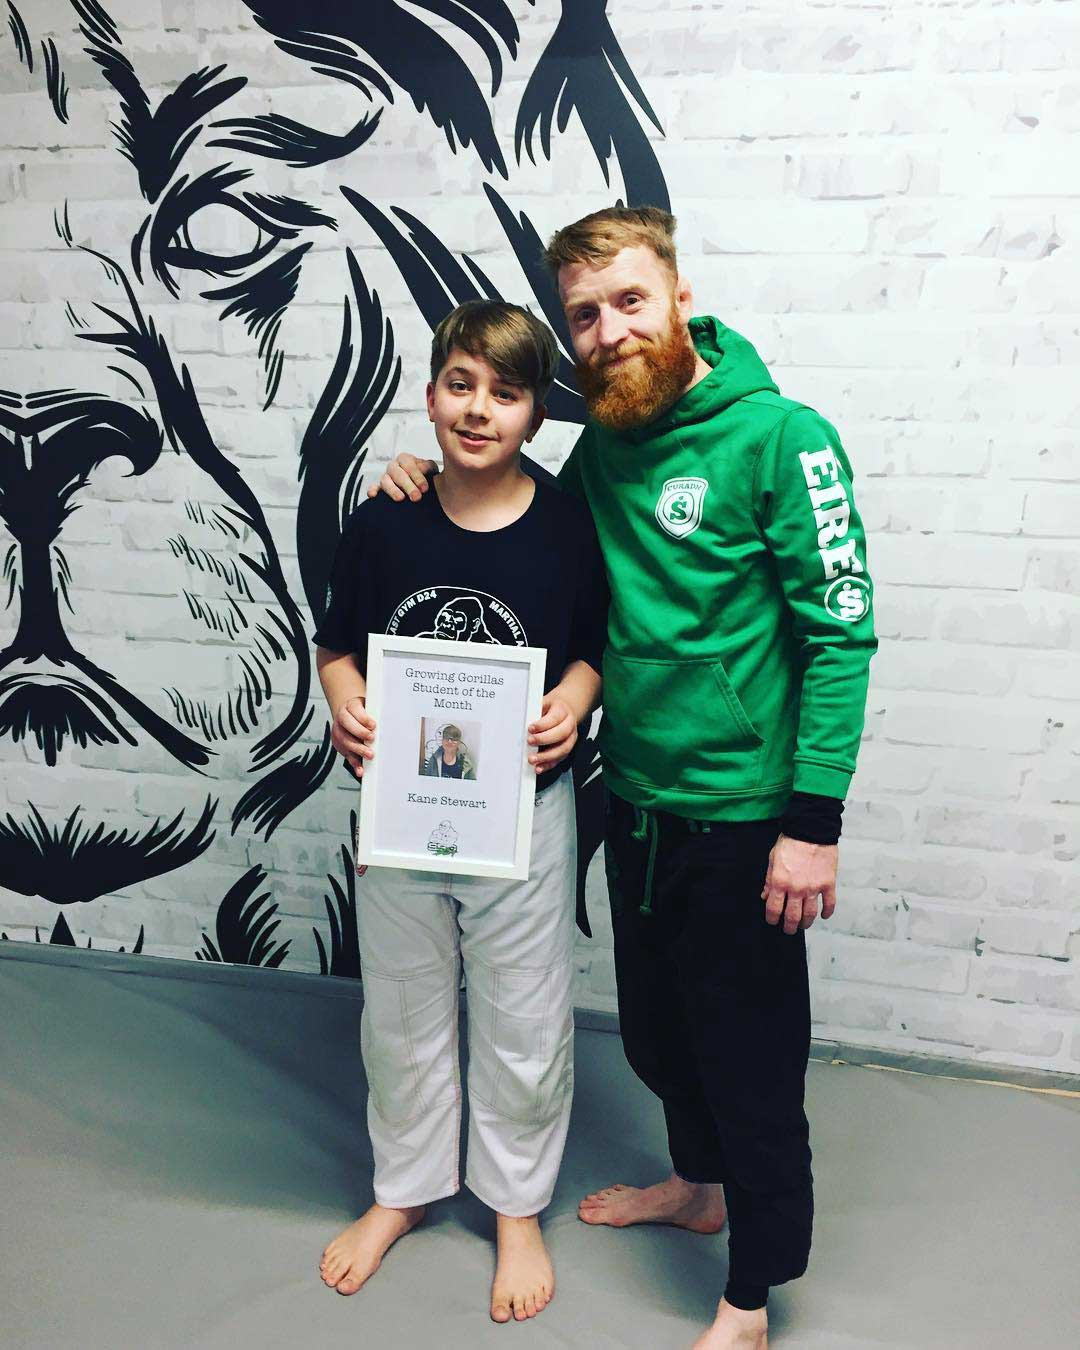 SBG Dublin24 student of the month